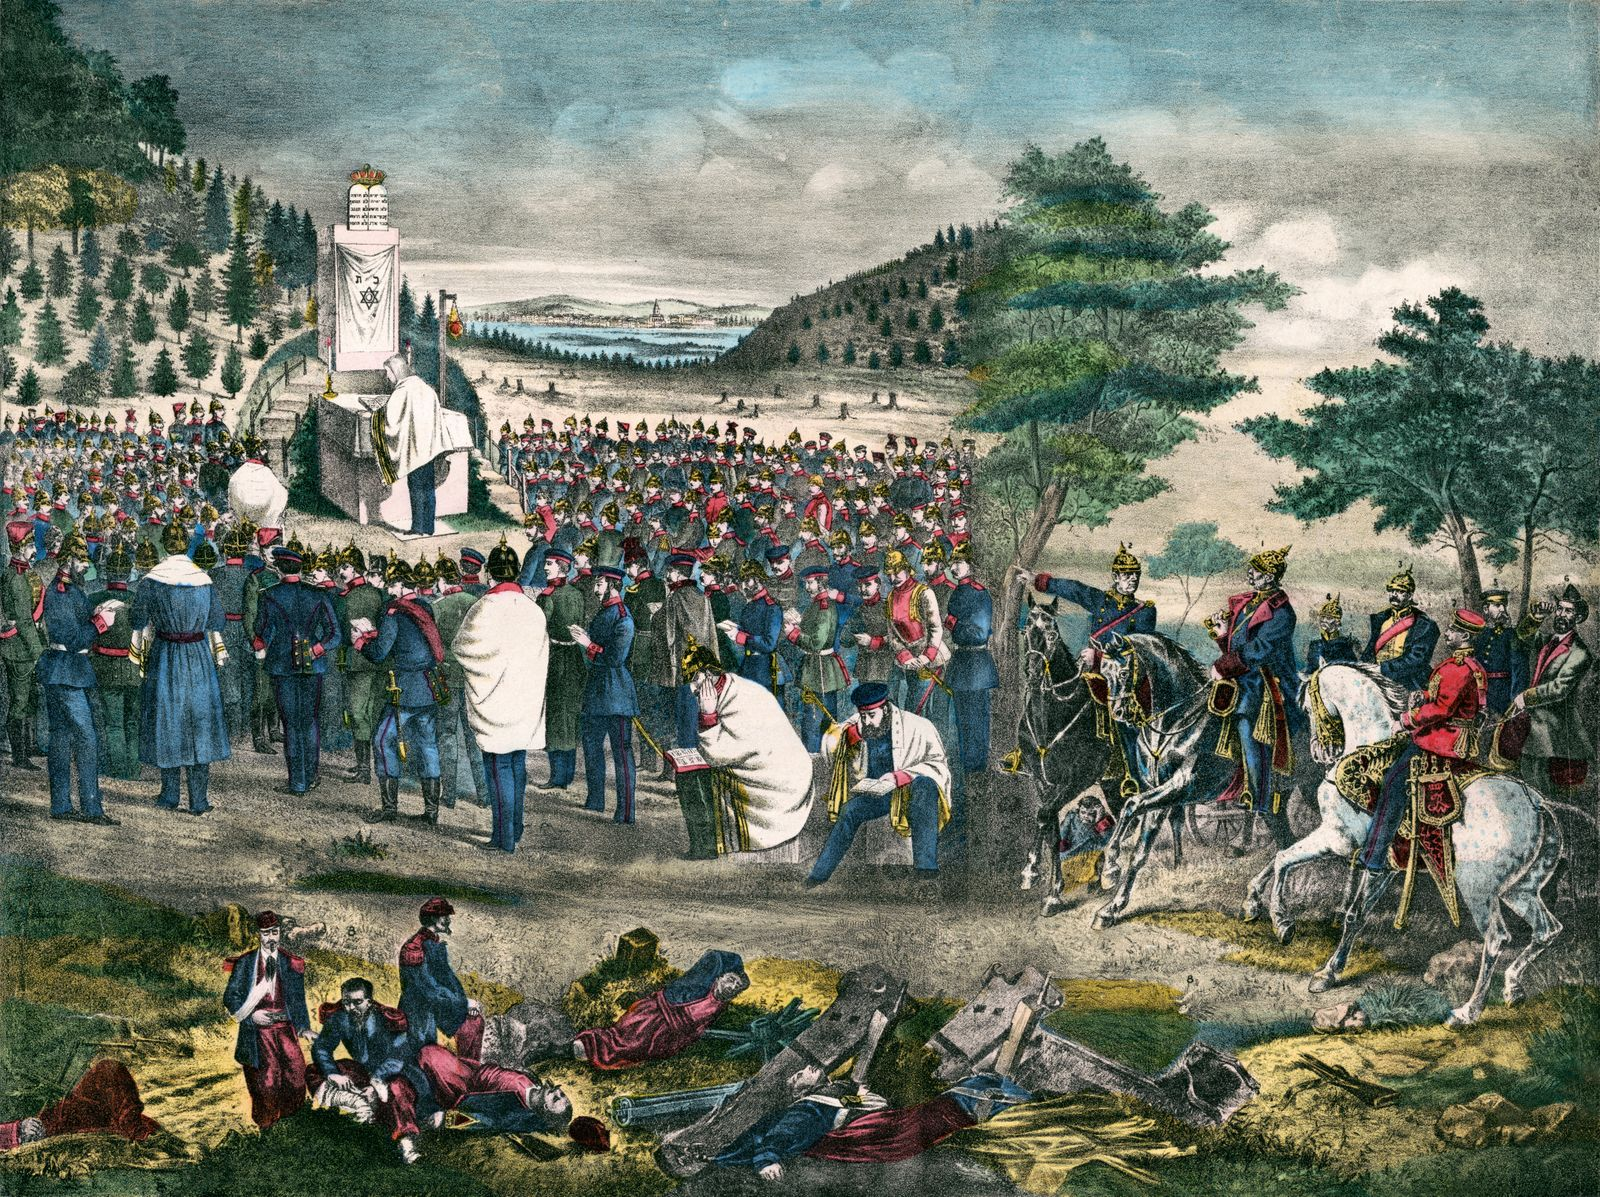 Yom Kippur, Day of Atonement Service during the Franco-Prussian War